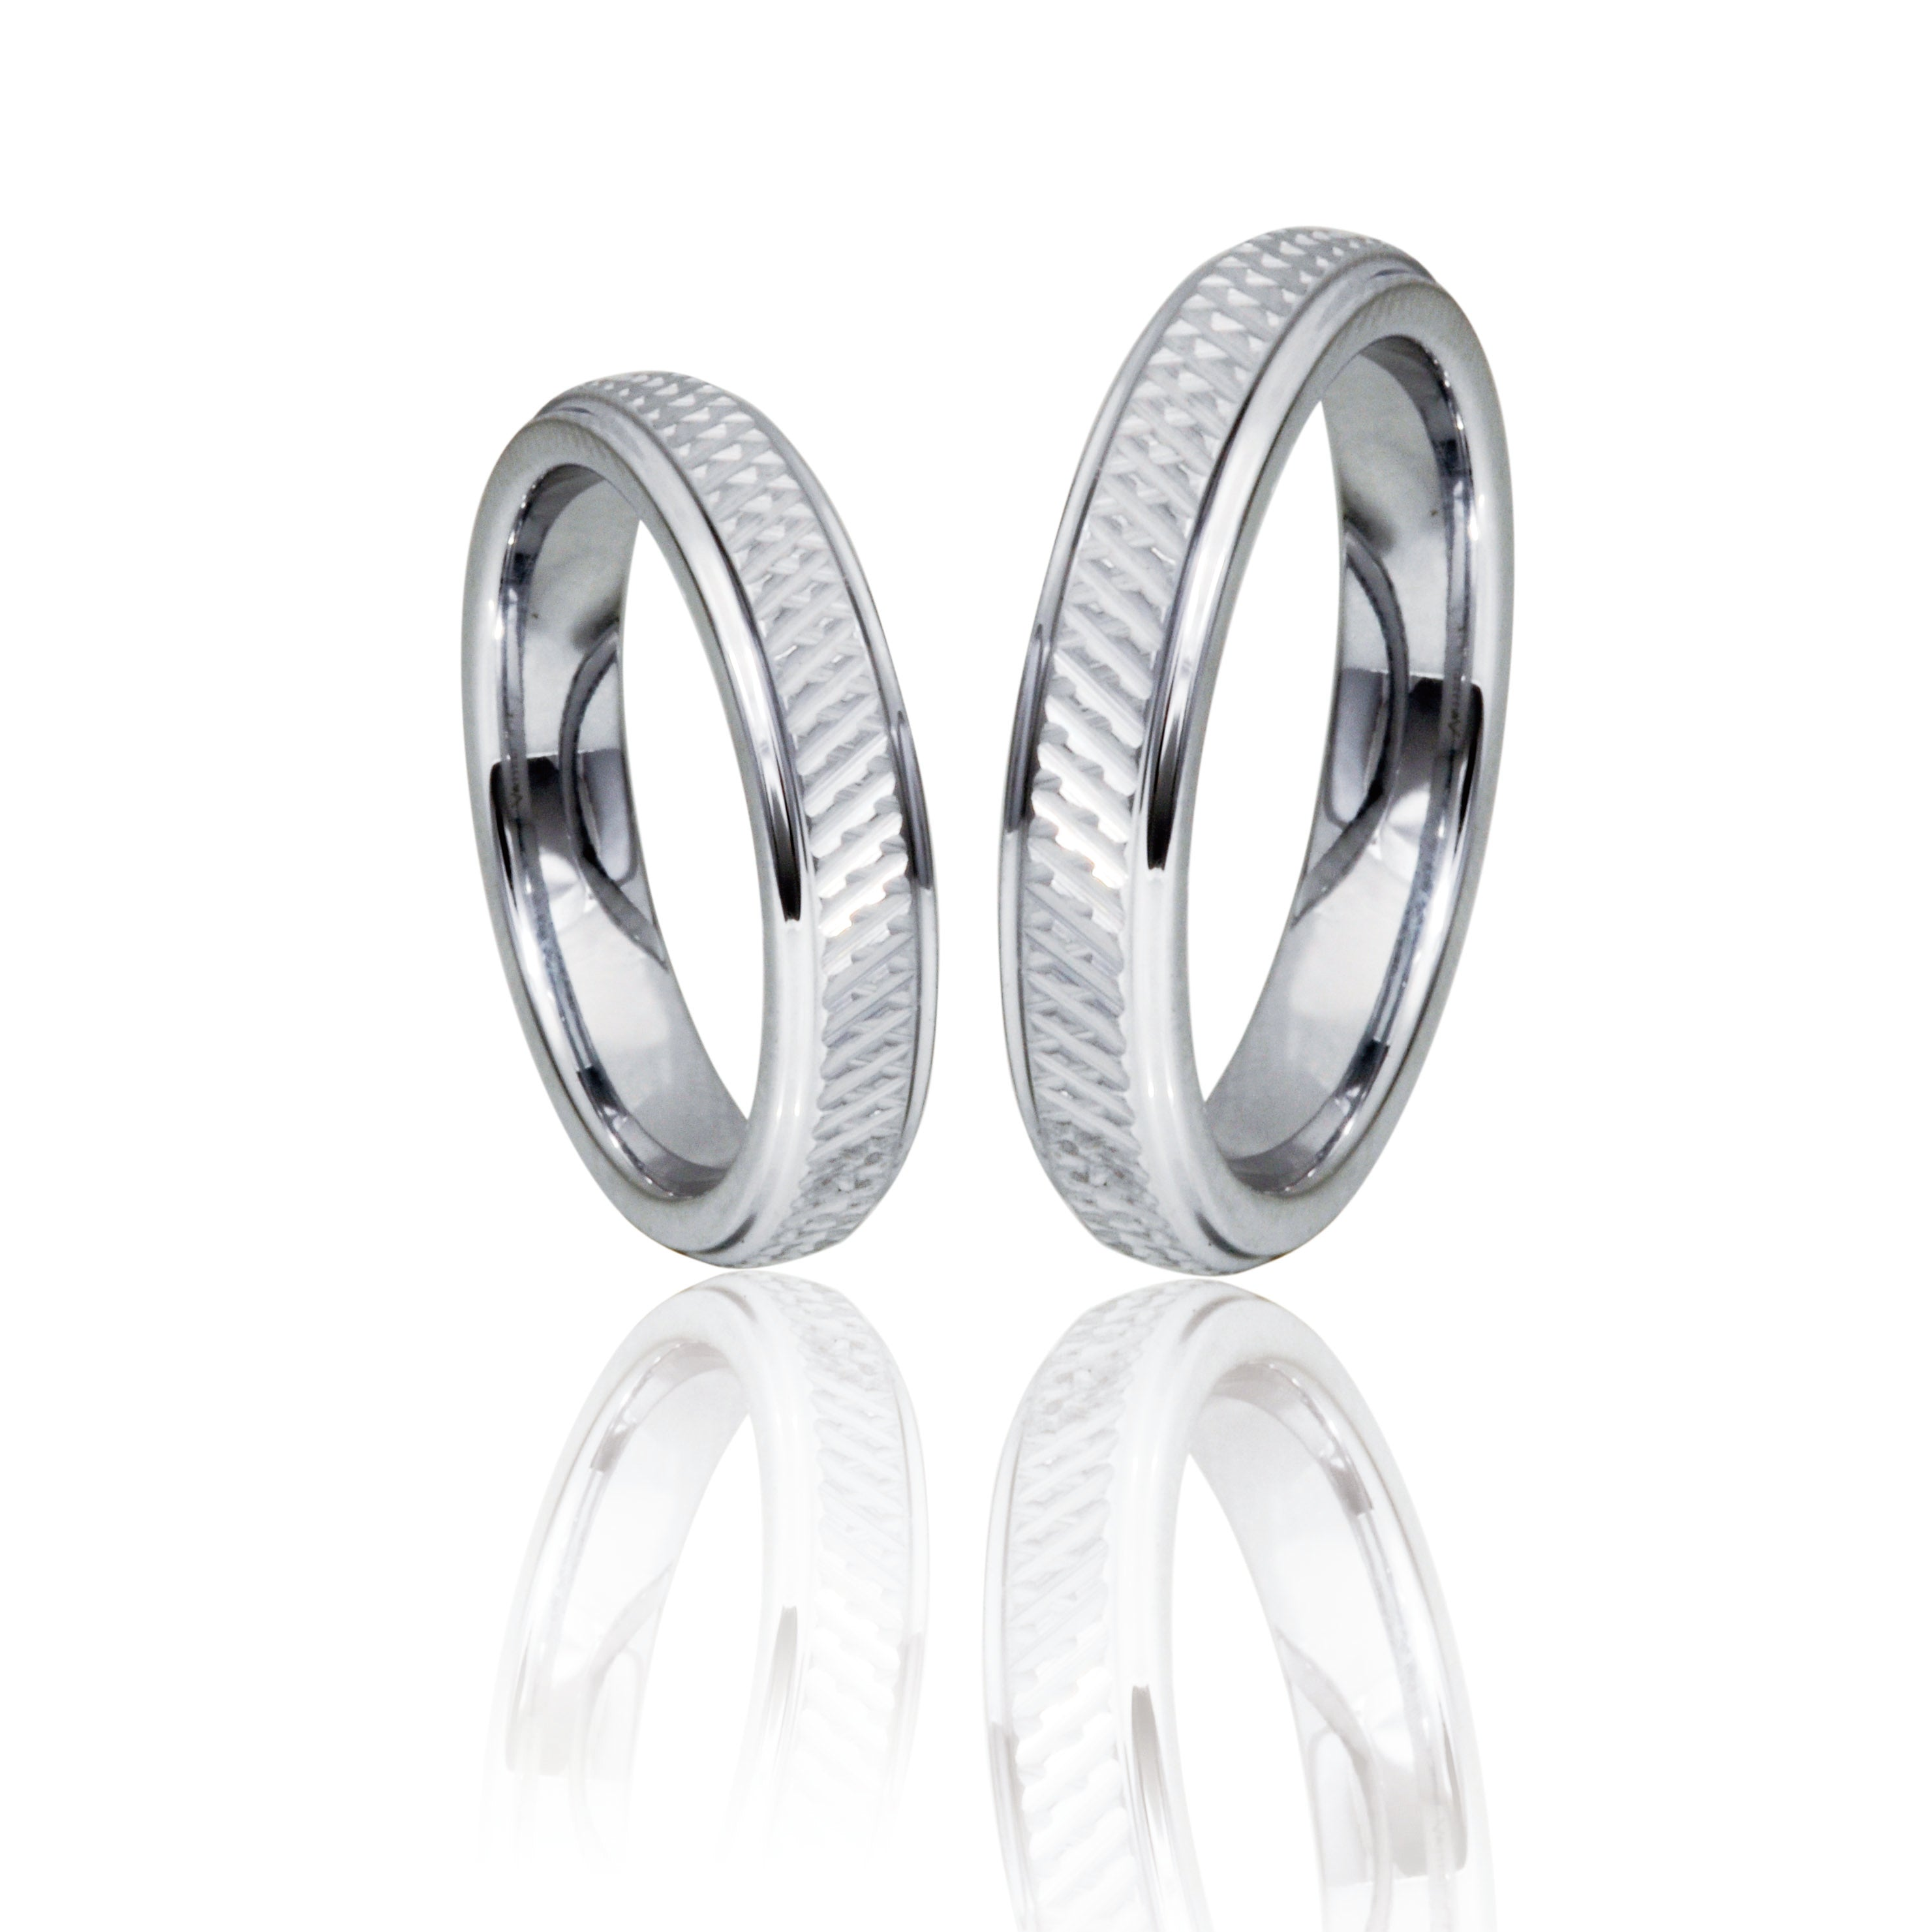 Criss Cross Silver Tungsten Ring with Polished Edges in Pairs